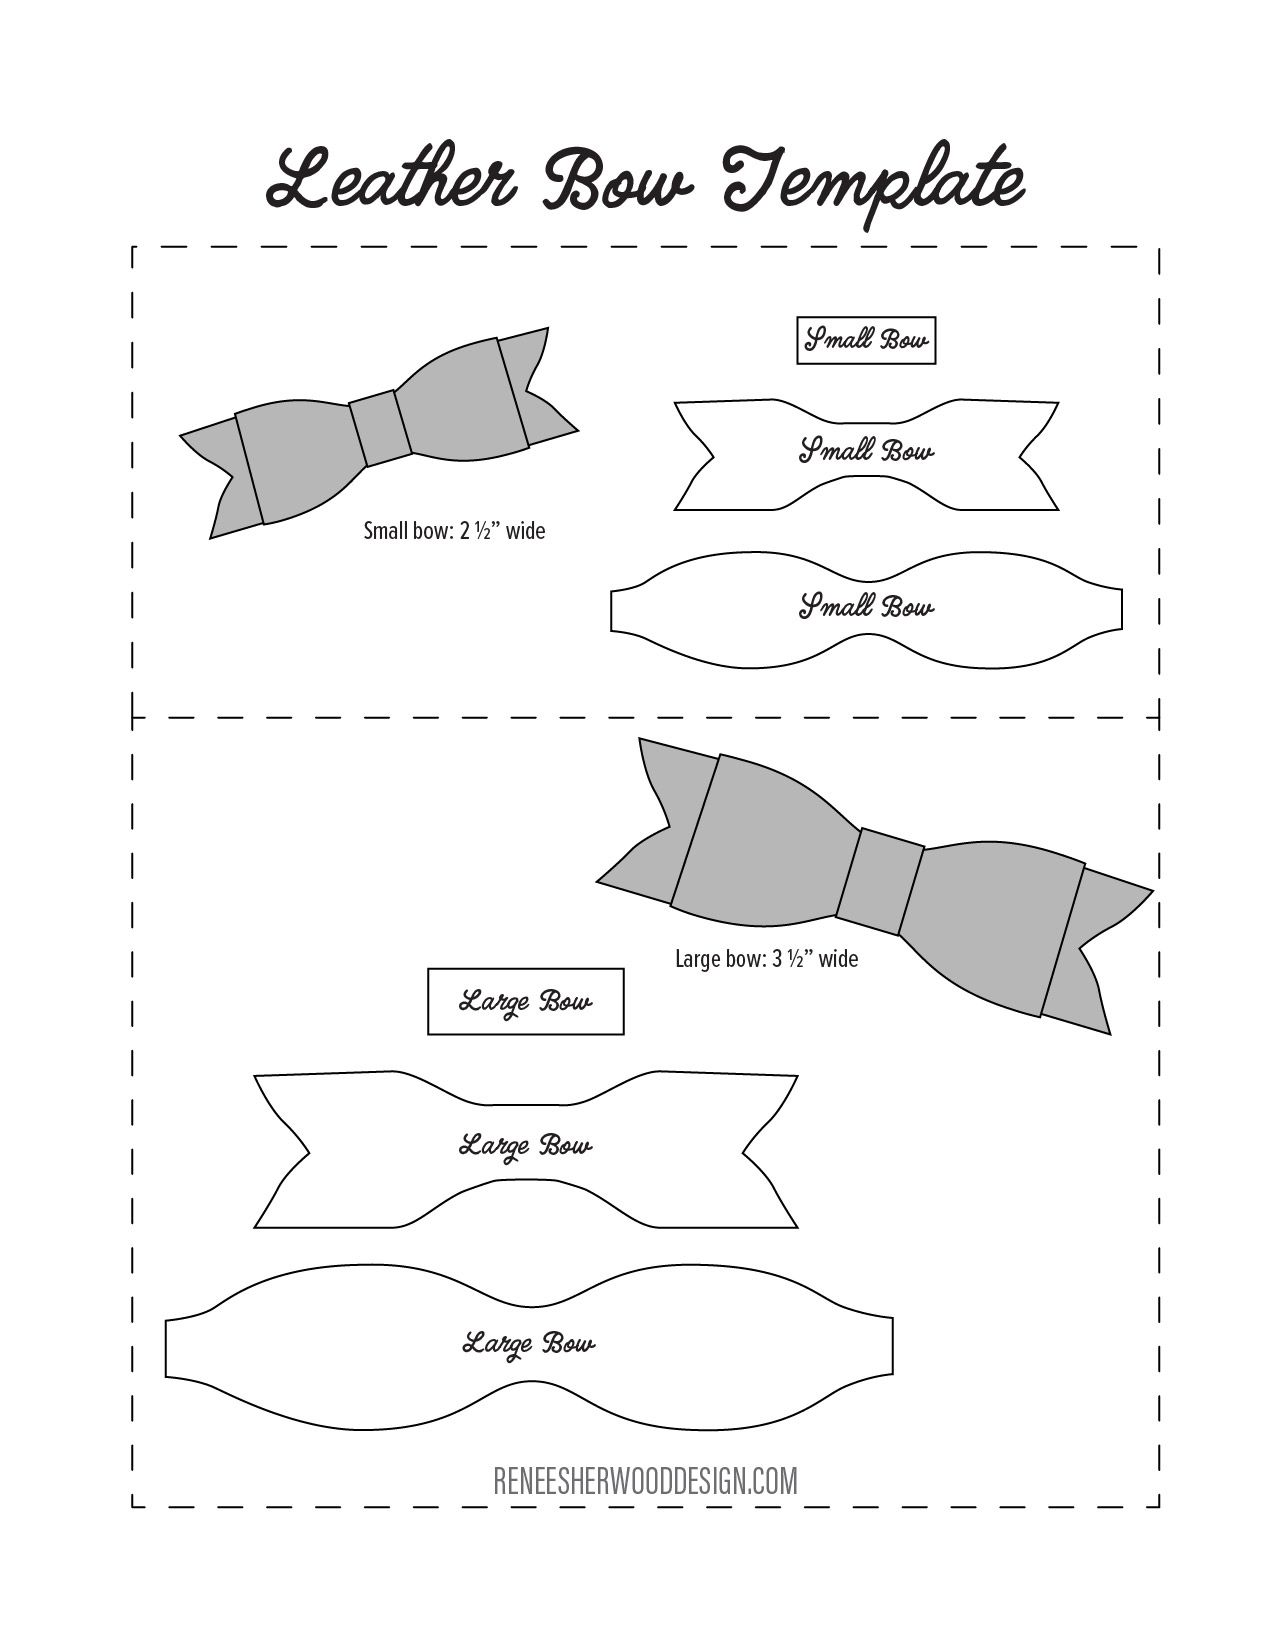 Free no sew leather or felt bow template download at www free no sew leather or felt bow template download at rsherwooddesign pronofoot35fo Image collections